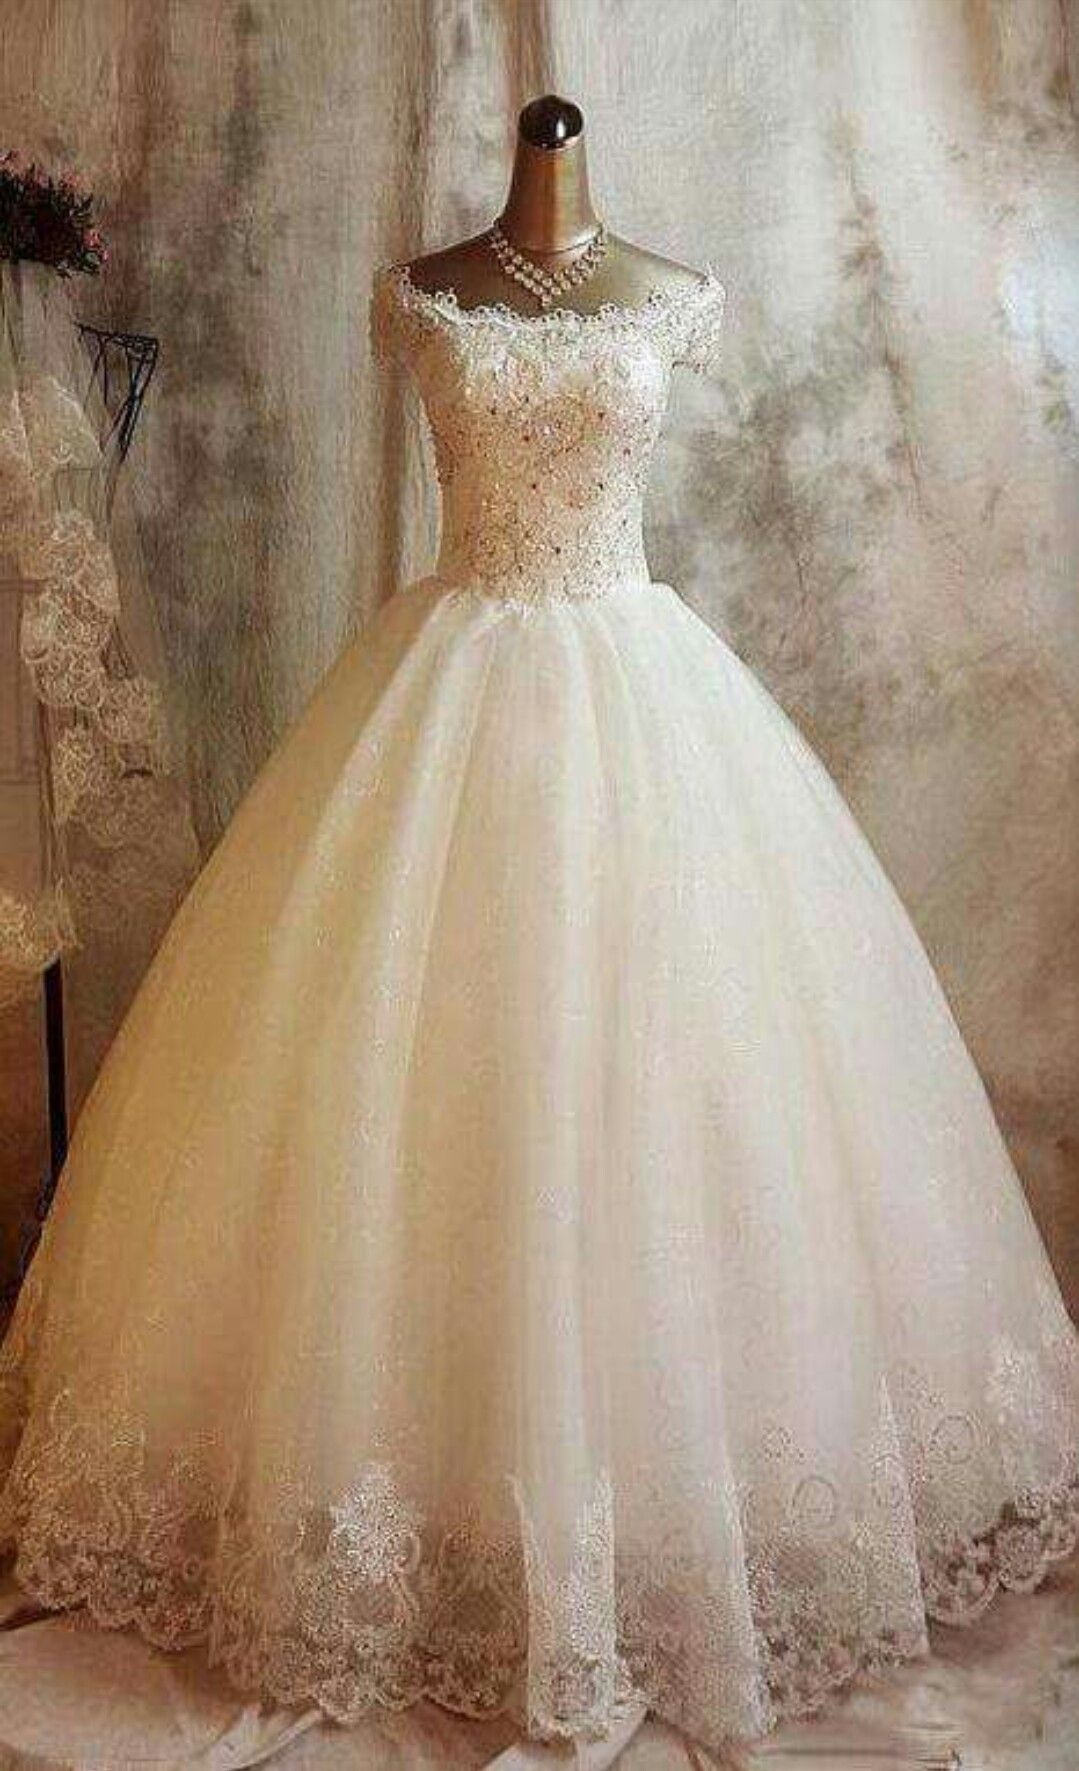 Most expensive wedding dress in the world  Pin by Abigail Scherzinger on Happily ever after uc  Pinterest